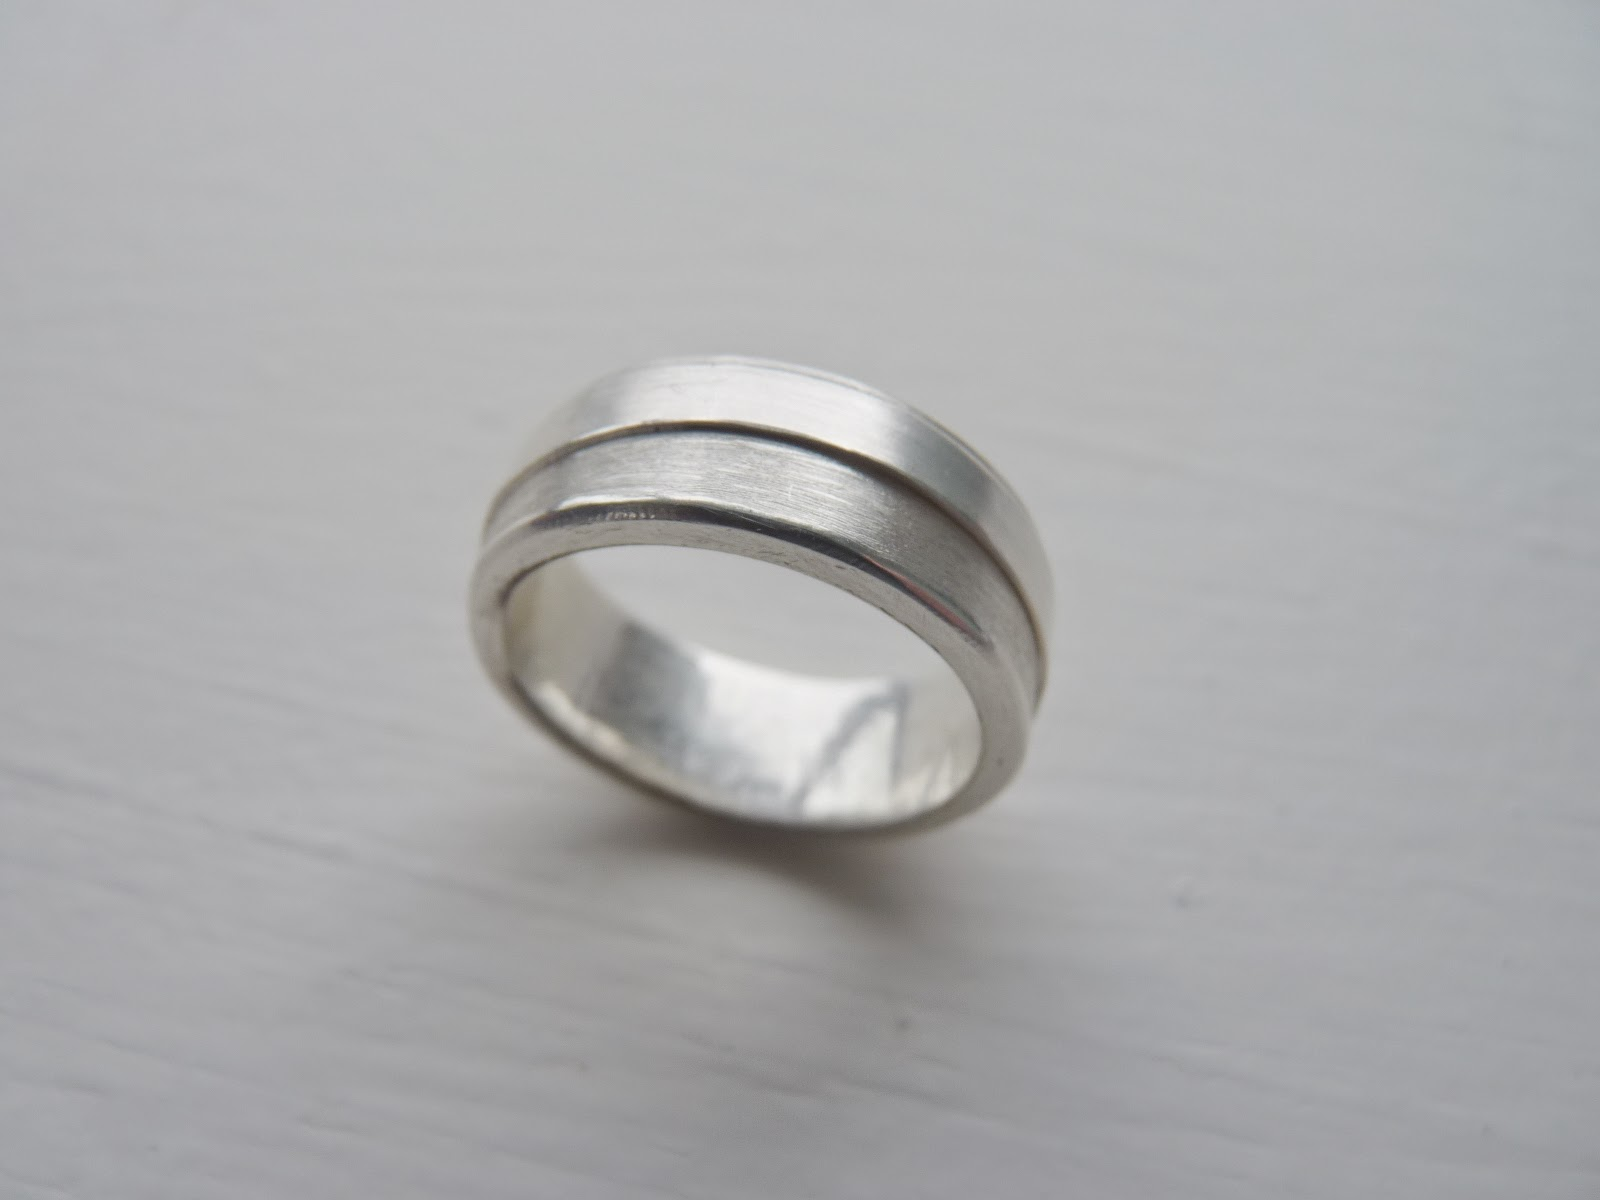 Passion Flower Studio Make your own wedding rings